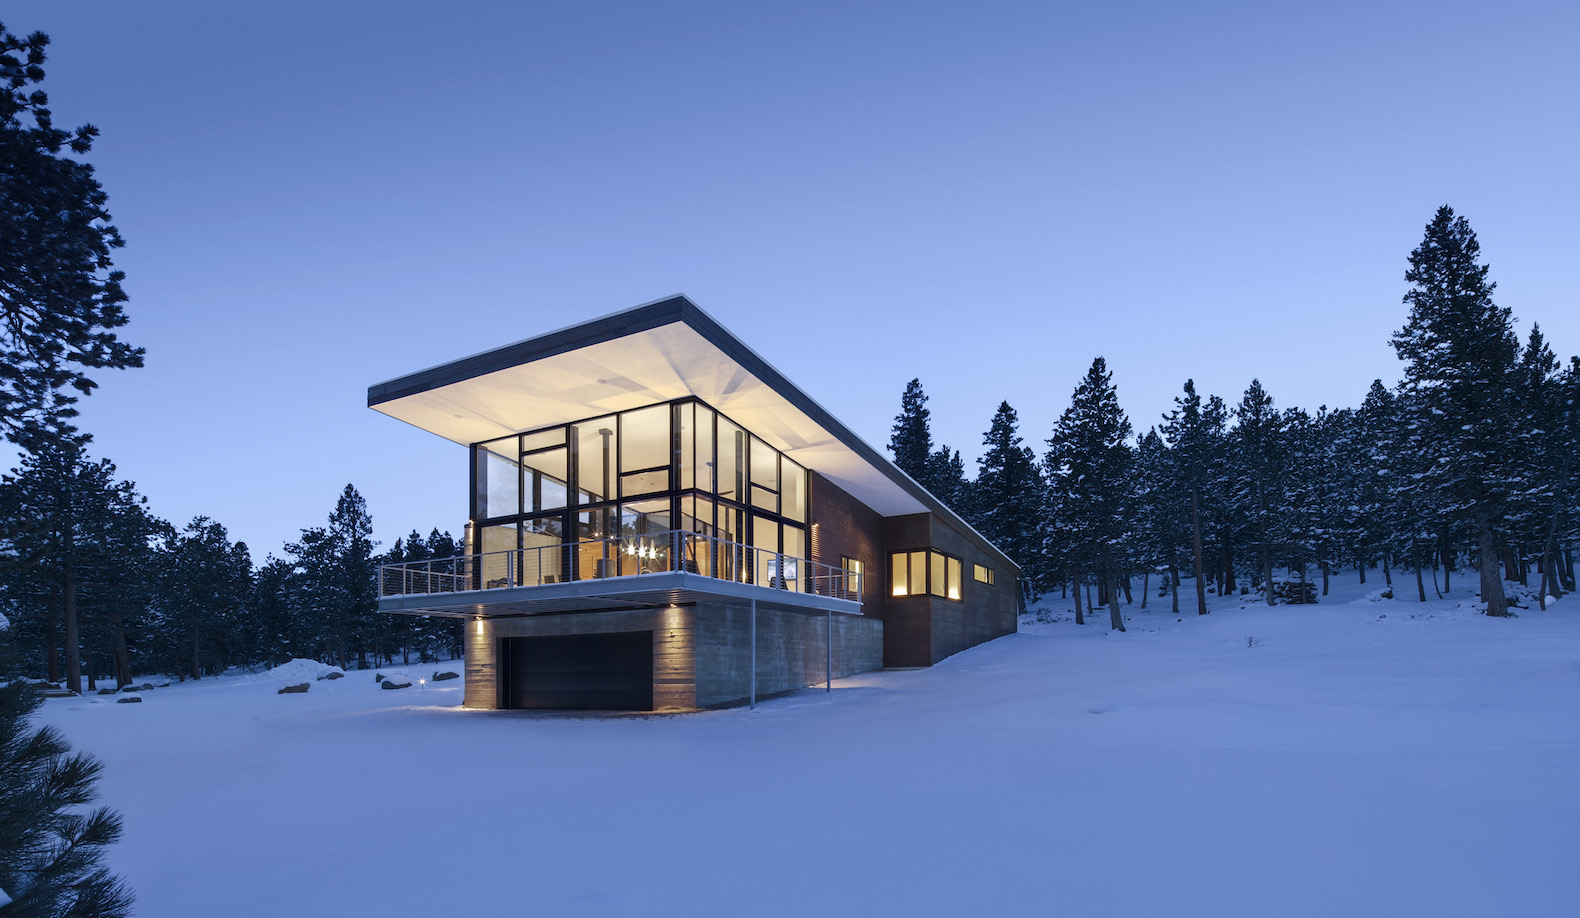 Delightful Modern Lodge In The Rocky Mountains Produces As Much Energy As It Consumes